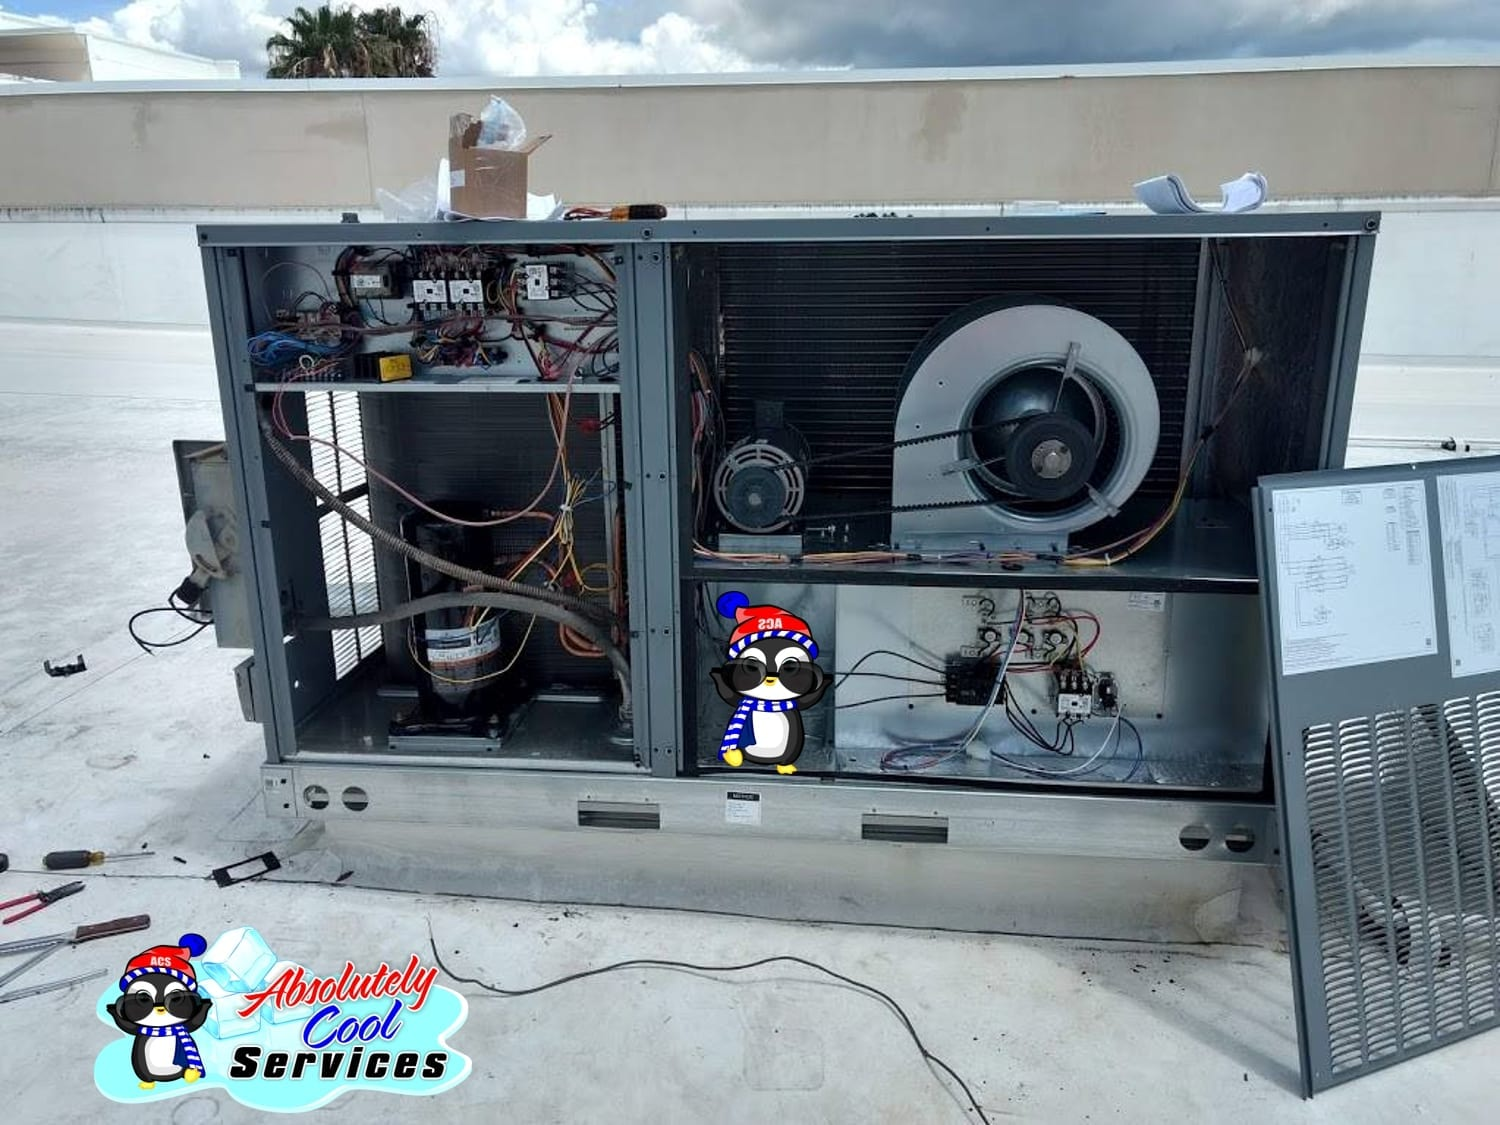 Roof Air Conditioning | Emergency Air Conditioning Repair Service near Lake Worth